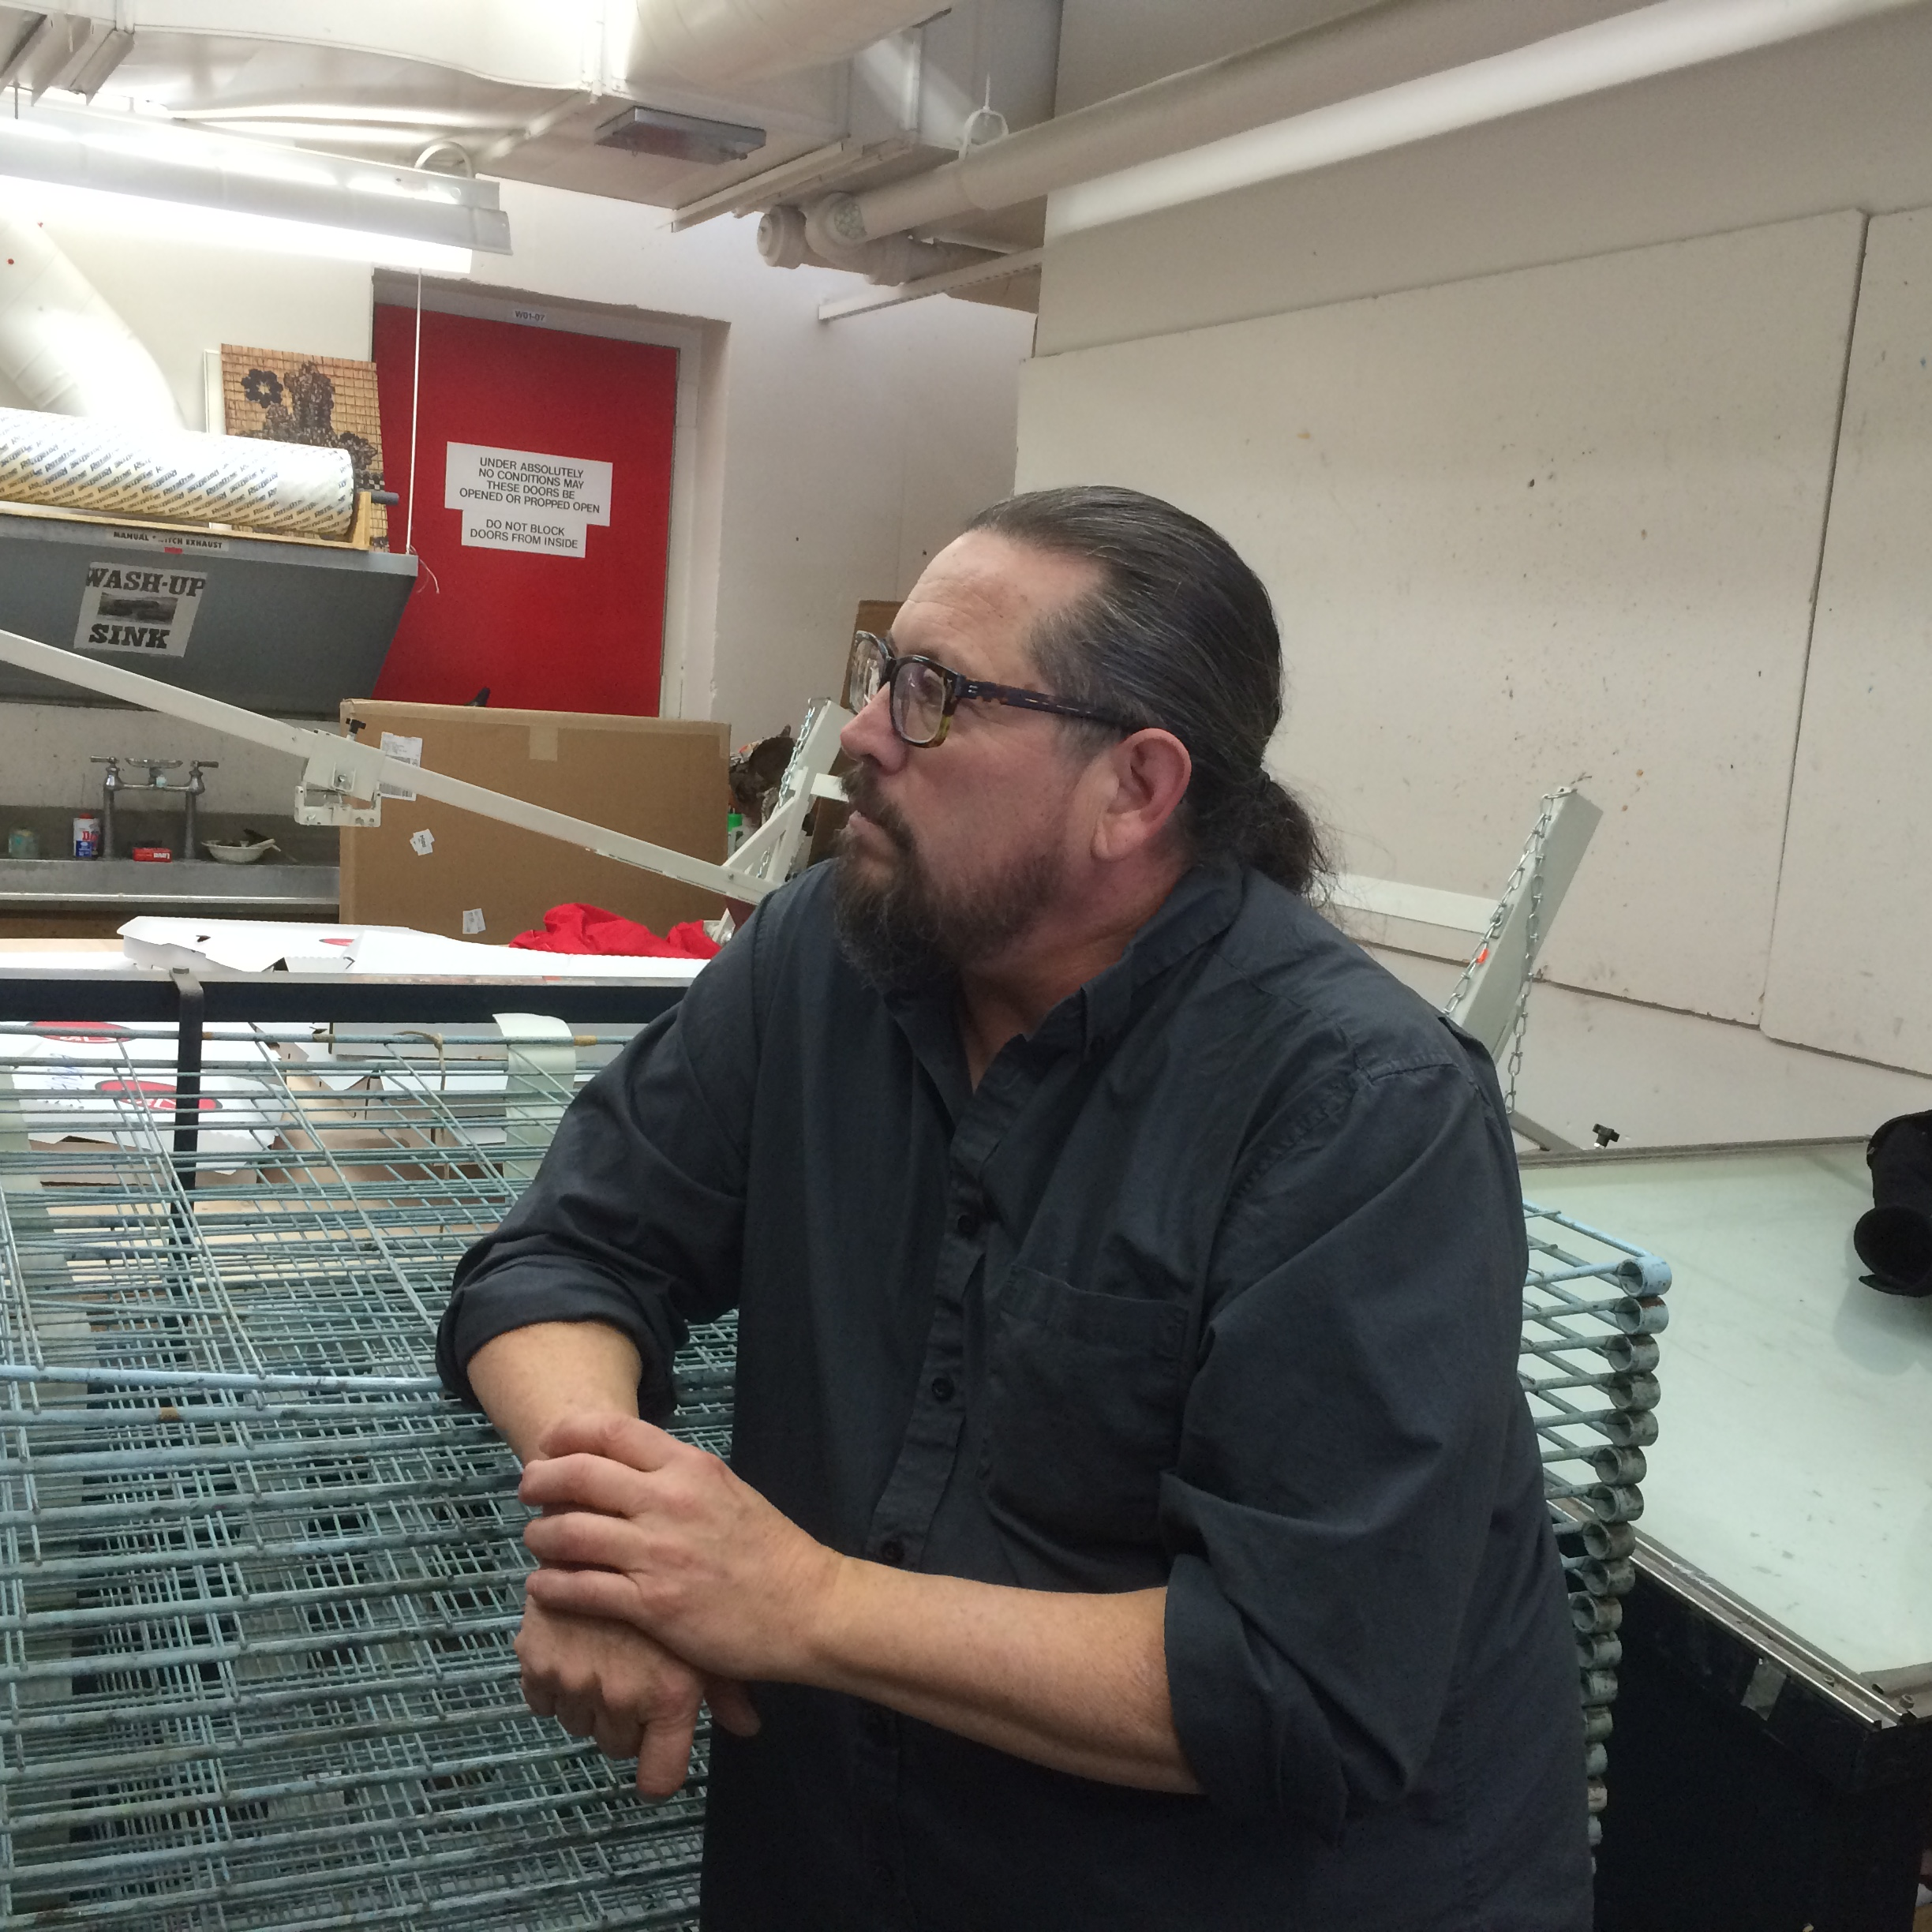 Visiting Artist and Alumni Bently Spang